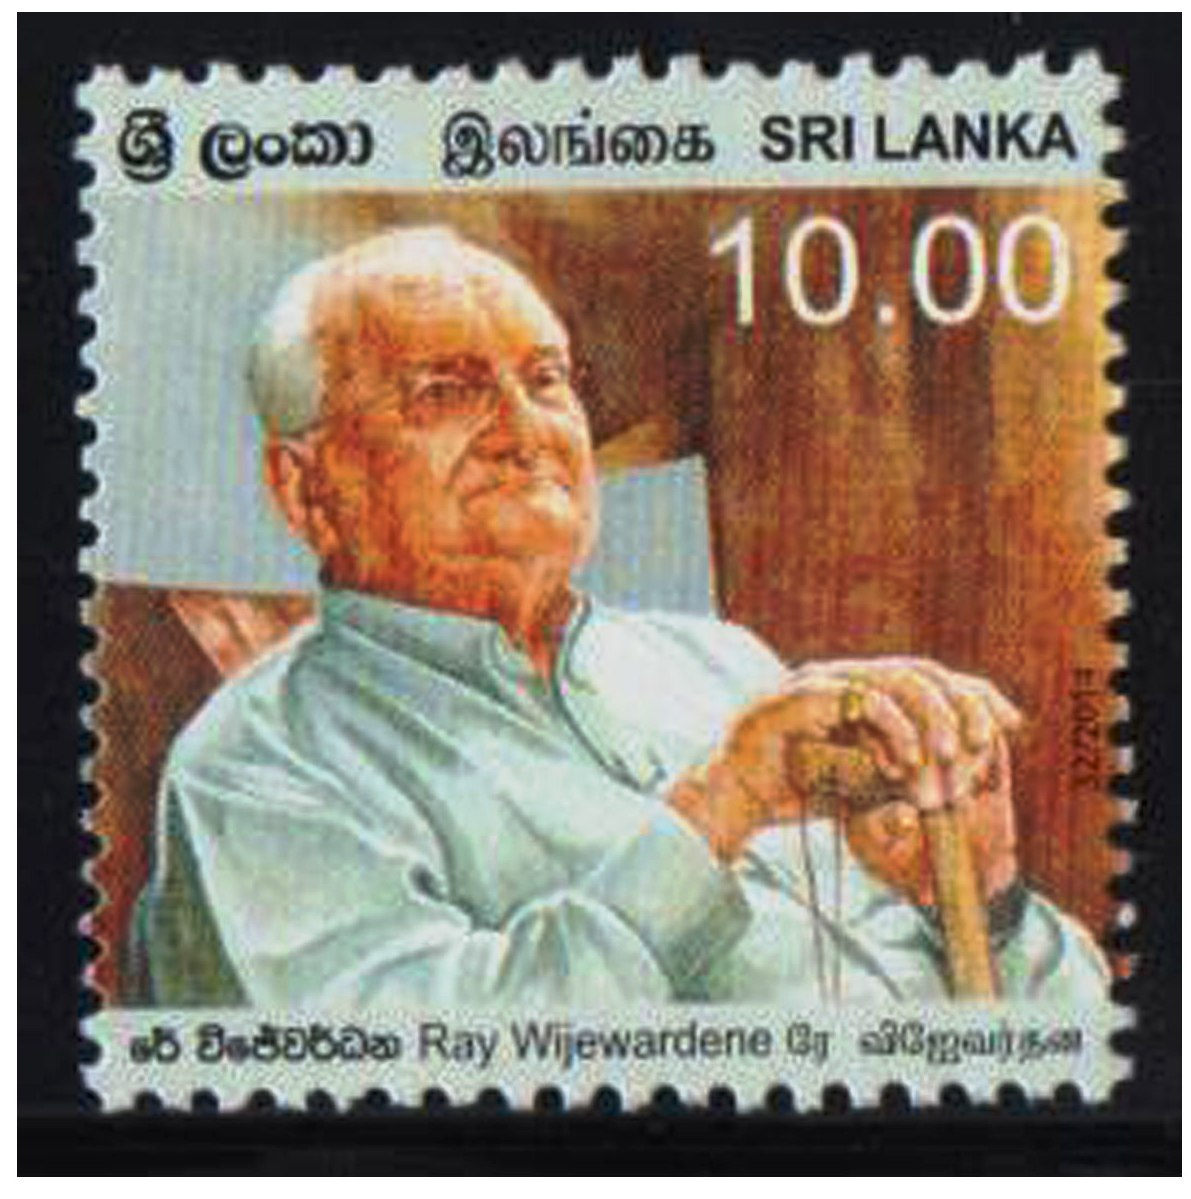 Ray Wijewardene stamp, issued on 31 Oct 2014